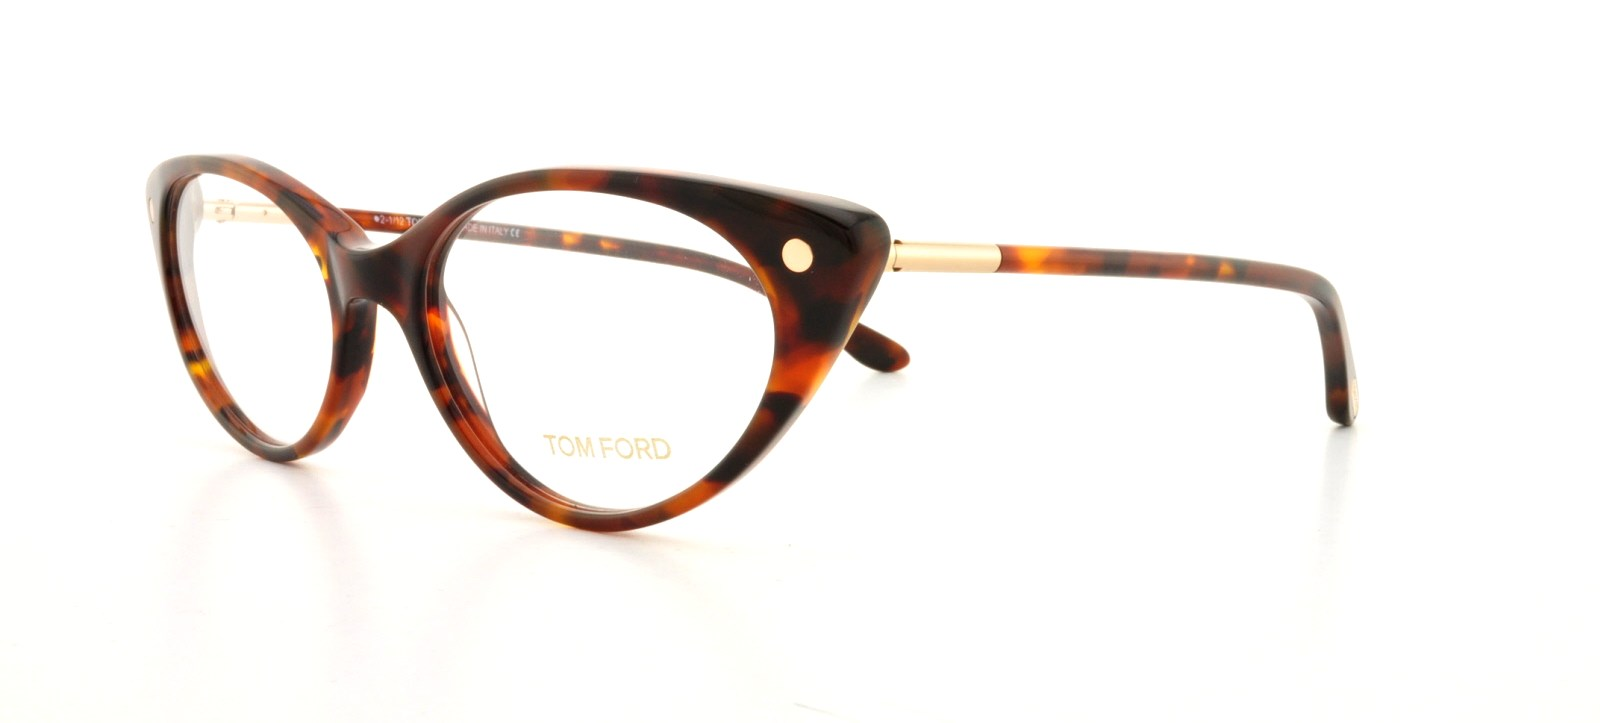 38ab61dea2b Picture of Tom Ford Eyeglasses FT5189